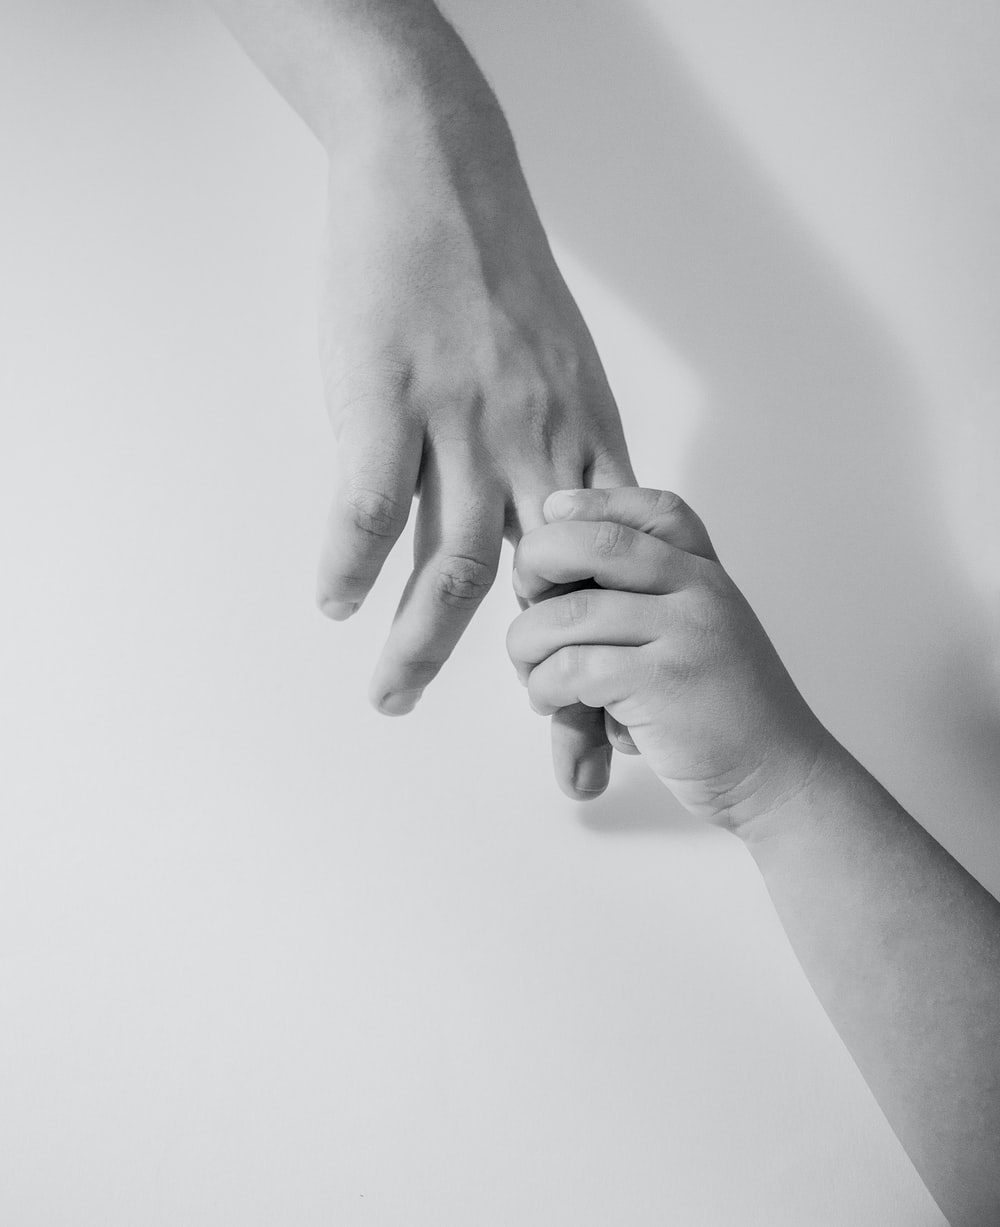 grayscale photo of to hands